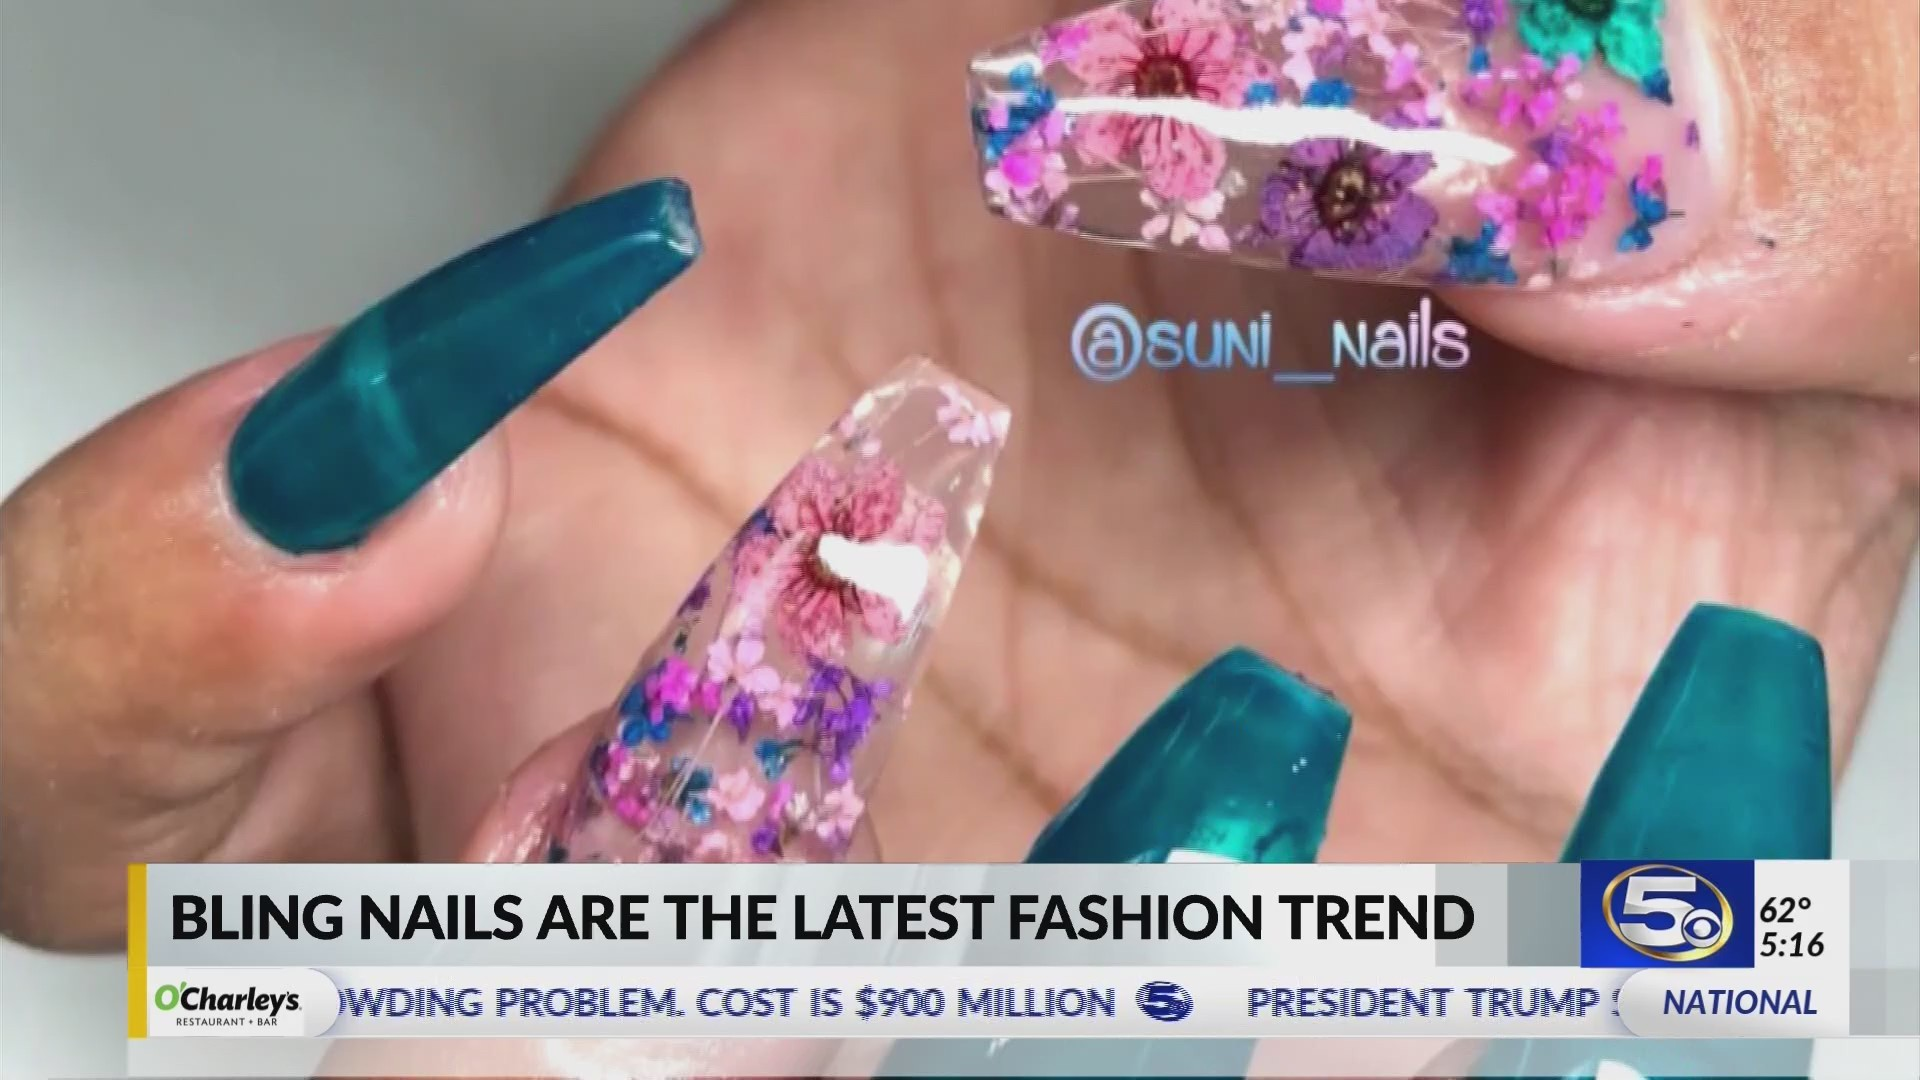 Blinged Nails Soar In Popularity Thanks To Cardi B